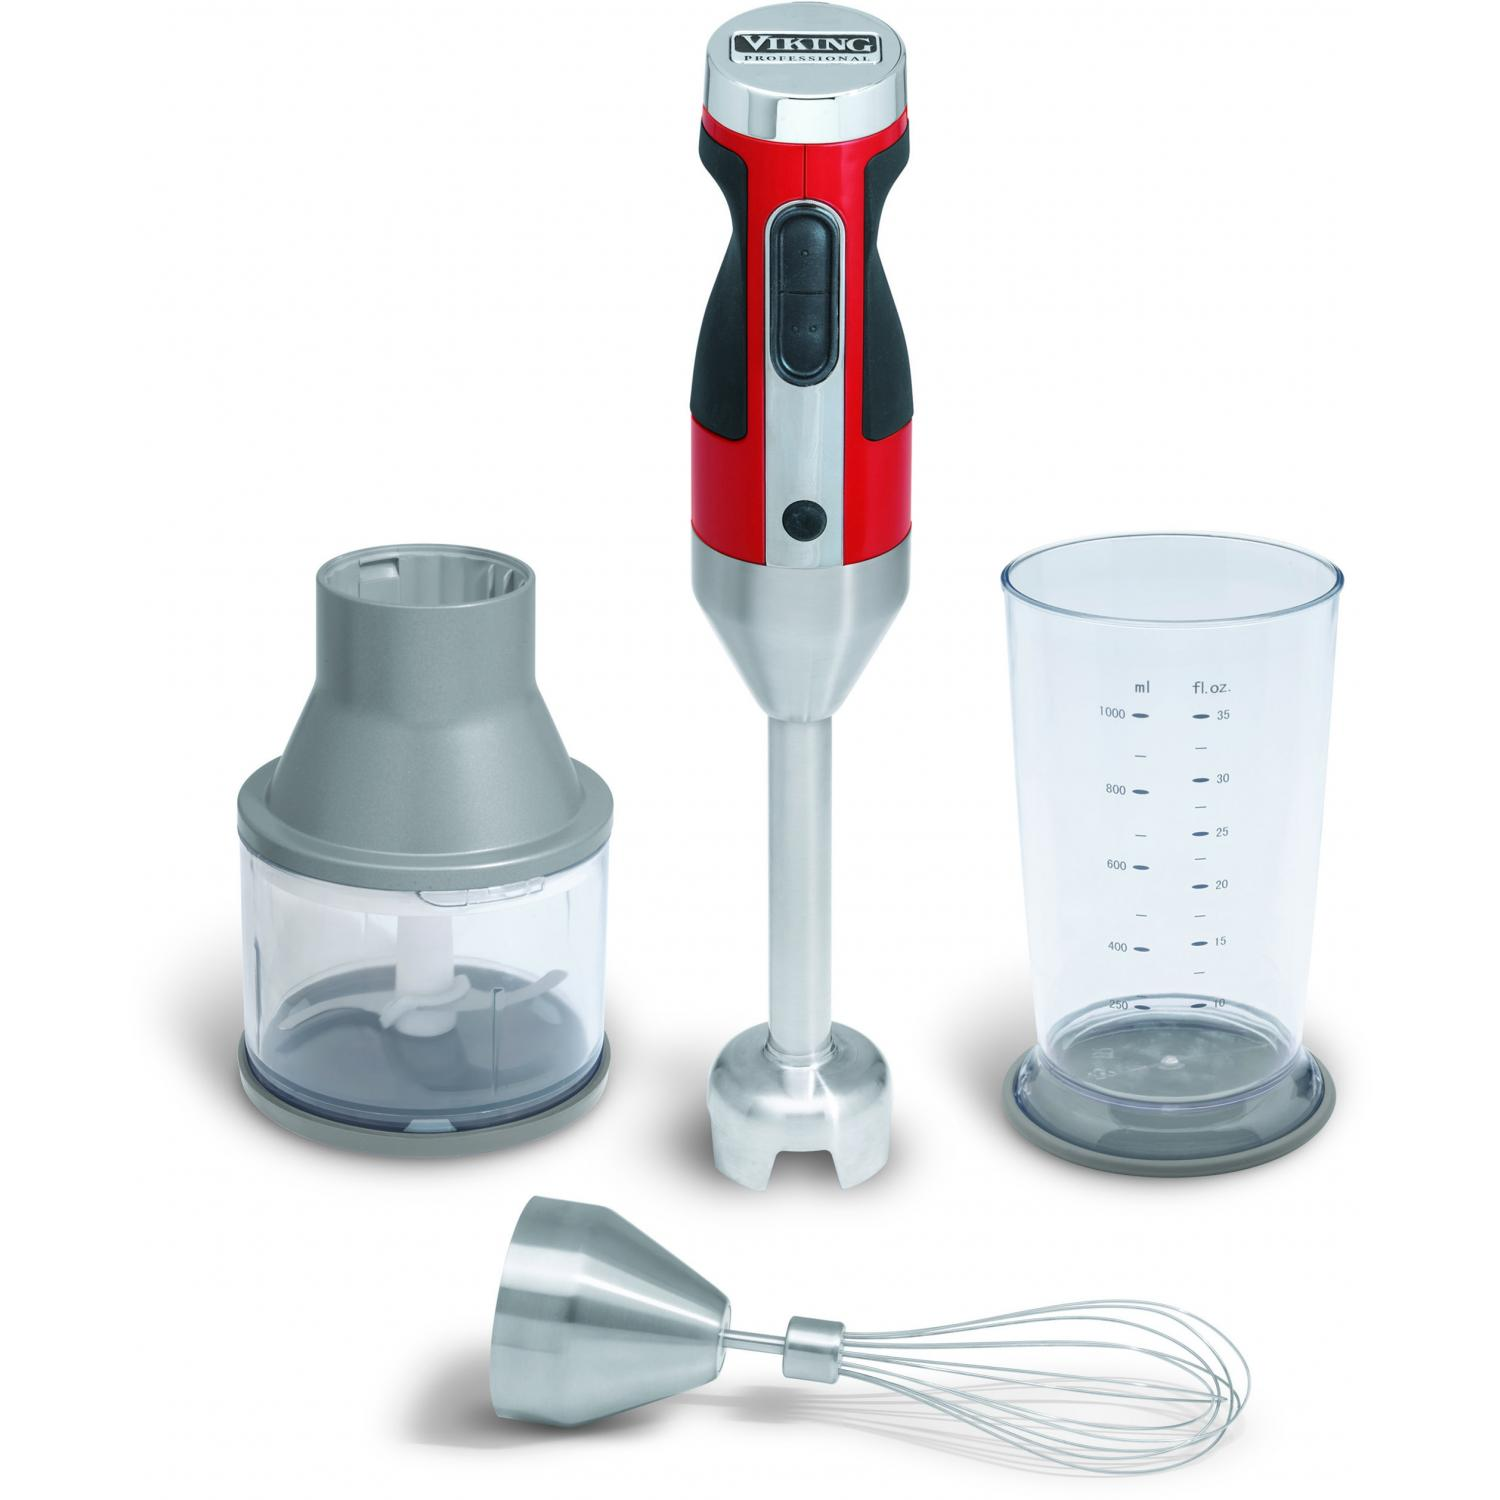 Viking VHB300BRPS Premium Hand Blender Set With Chopper Attachment - Bright Red